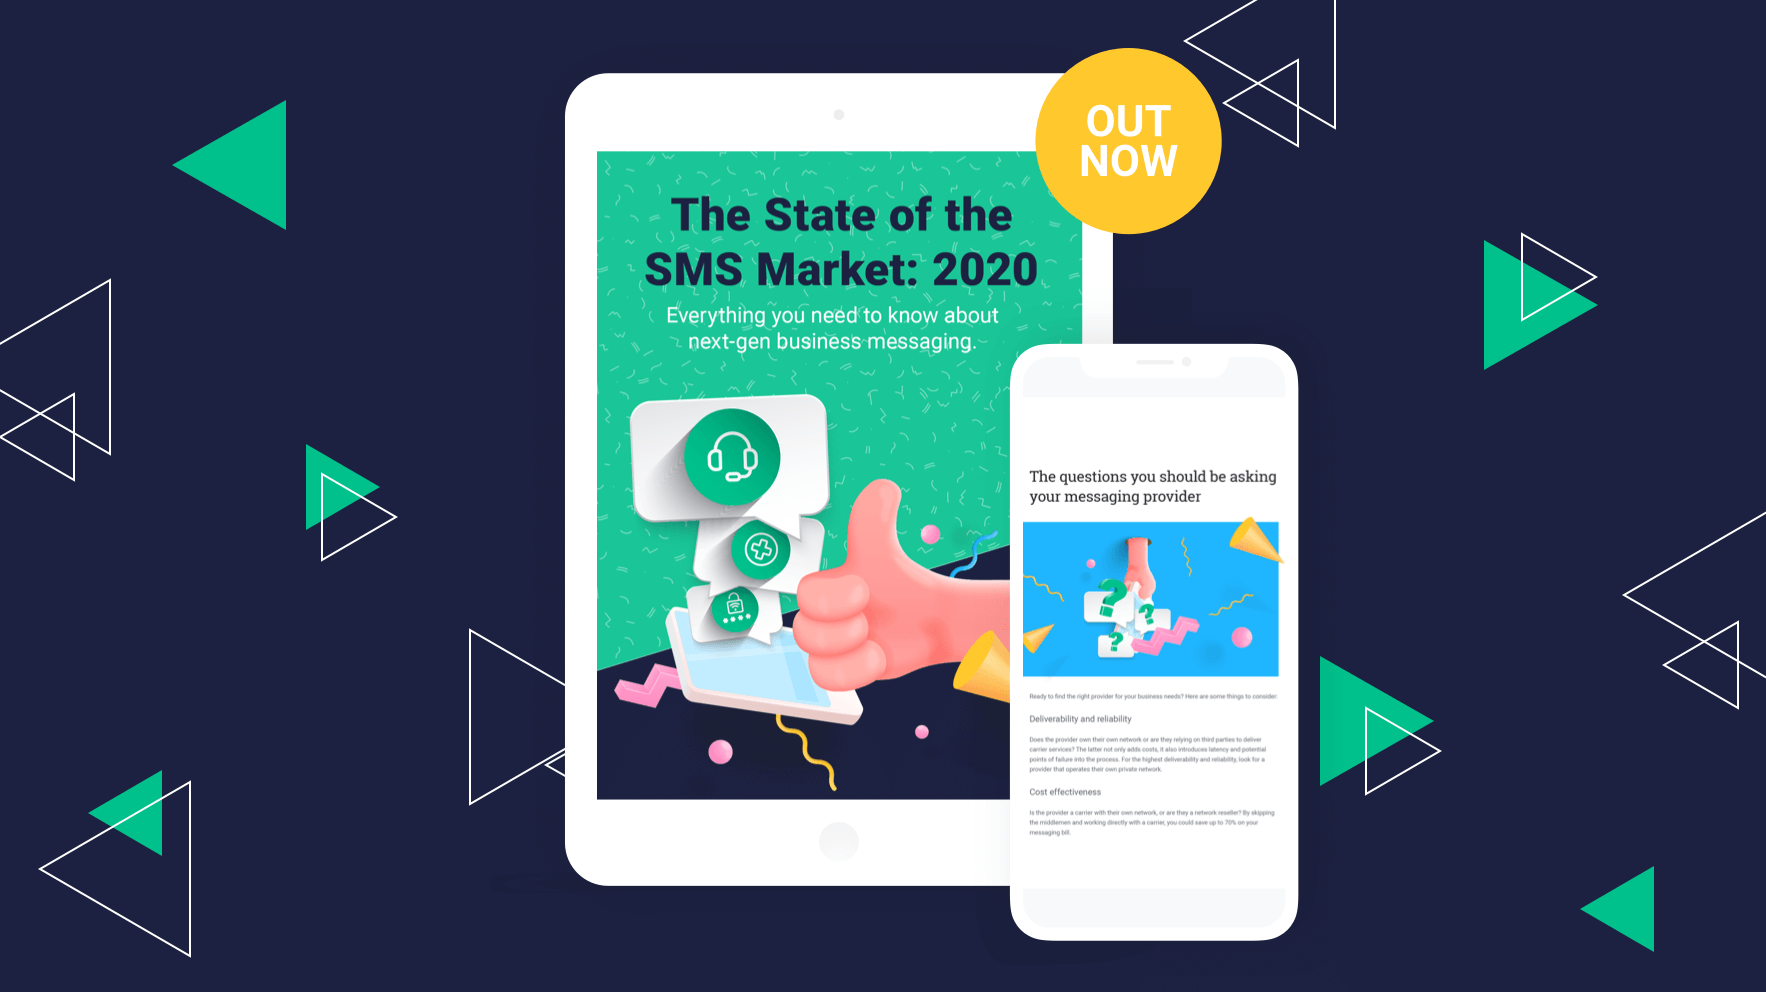 [eBook] The State of the SMS Market: 2020